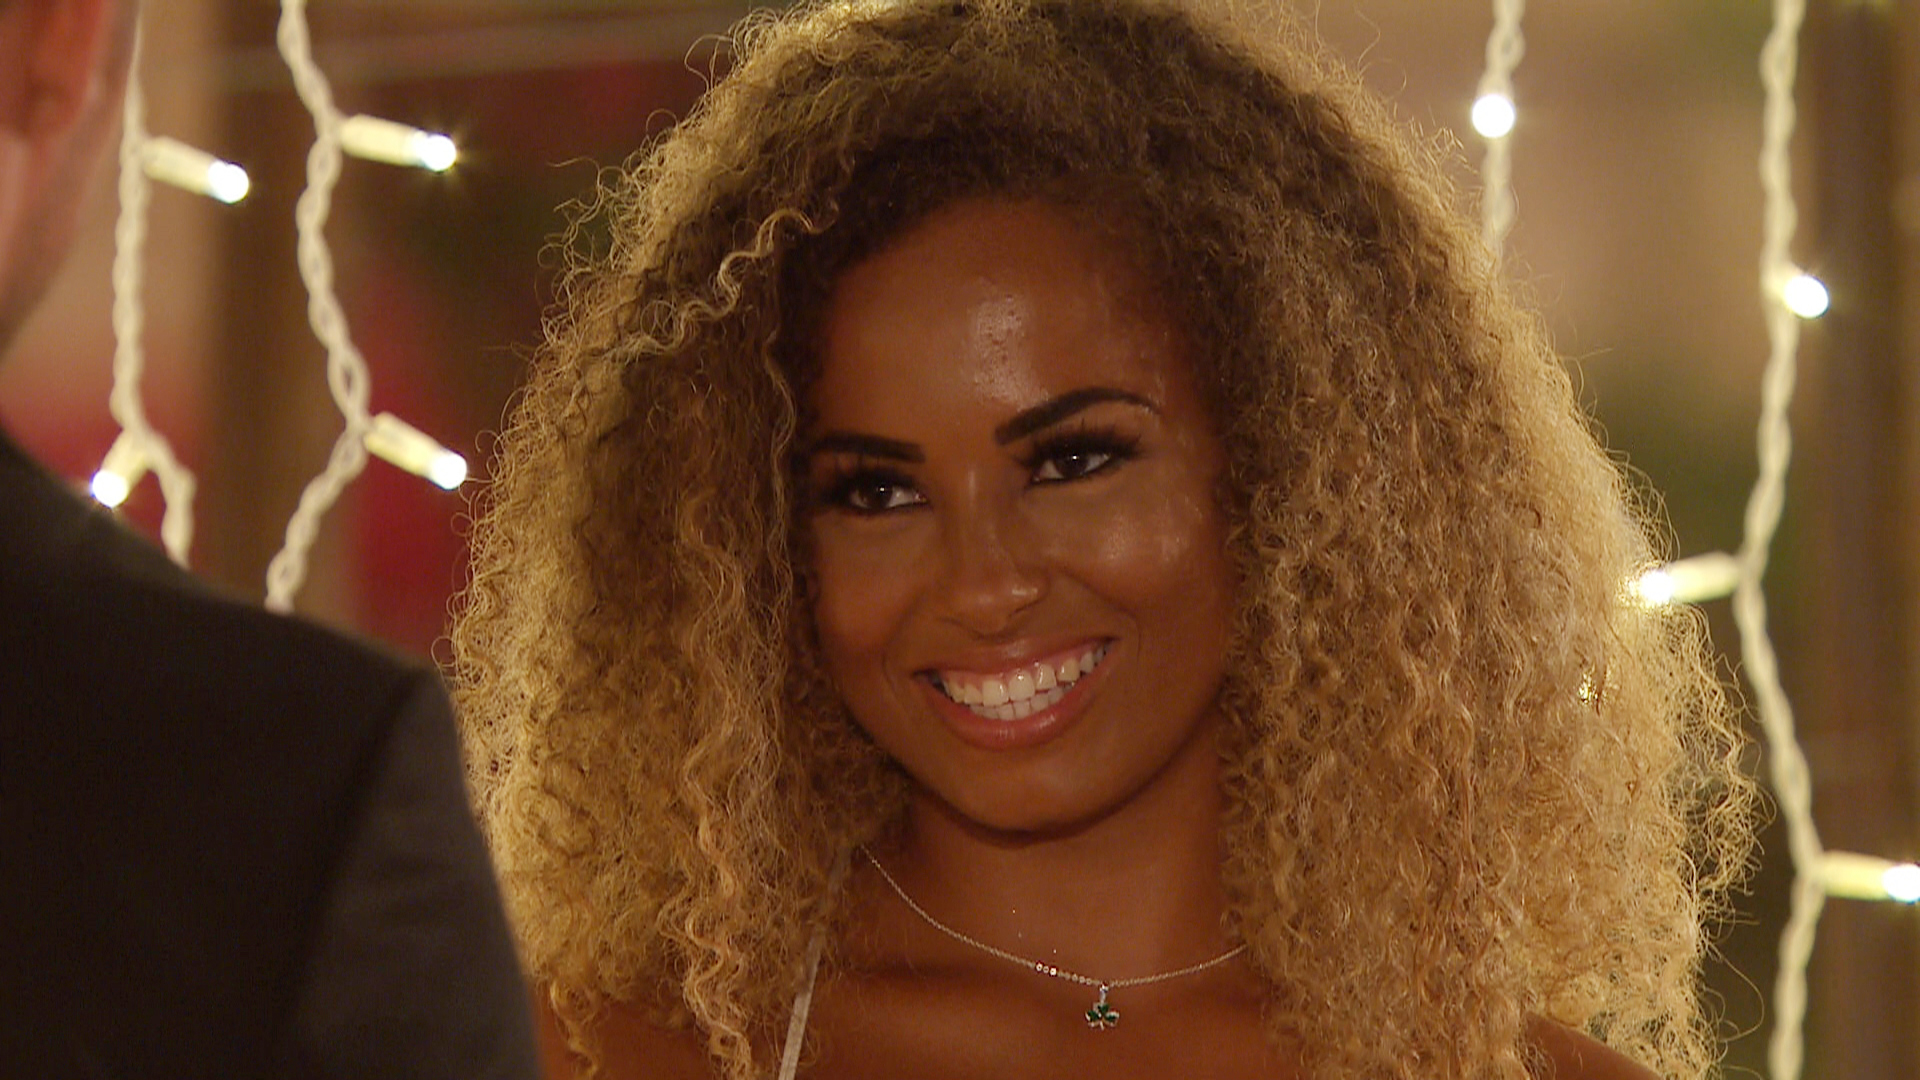 Love Island: Greg's family plan party for homecoming